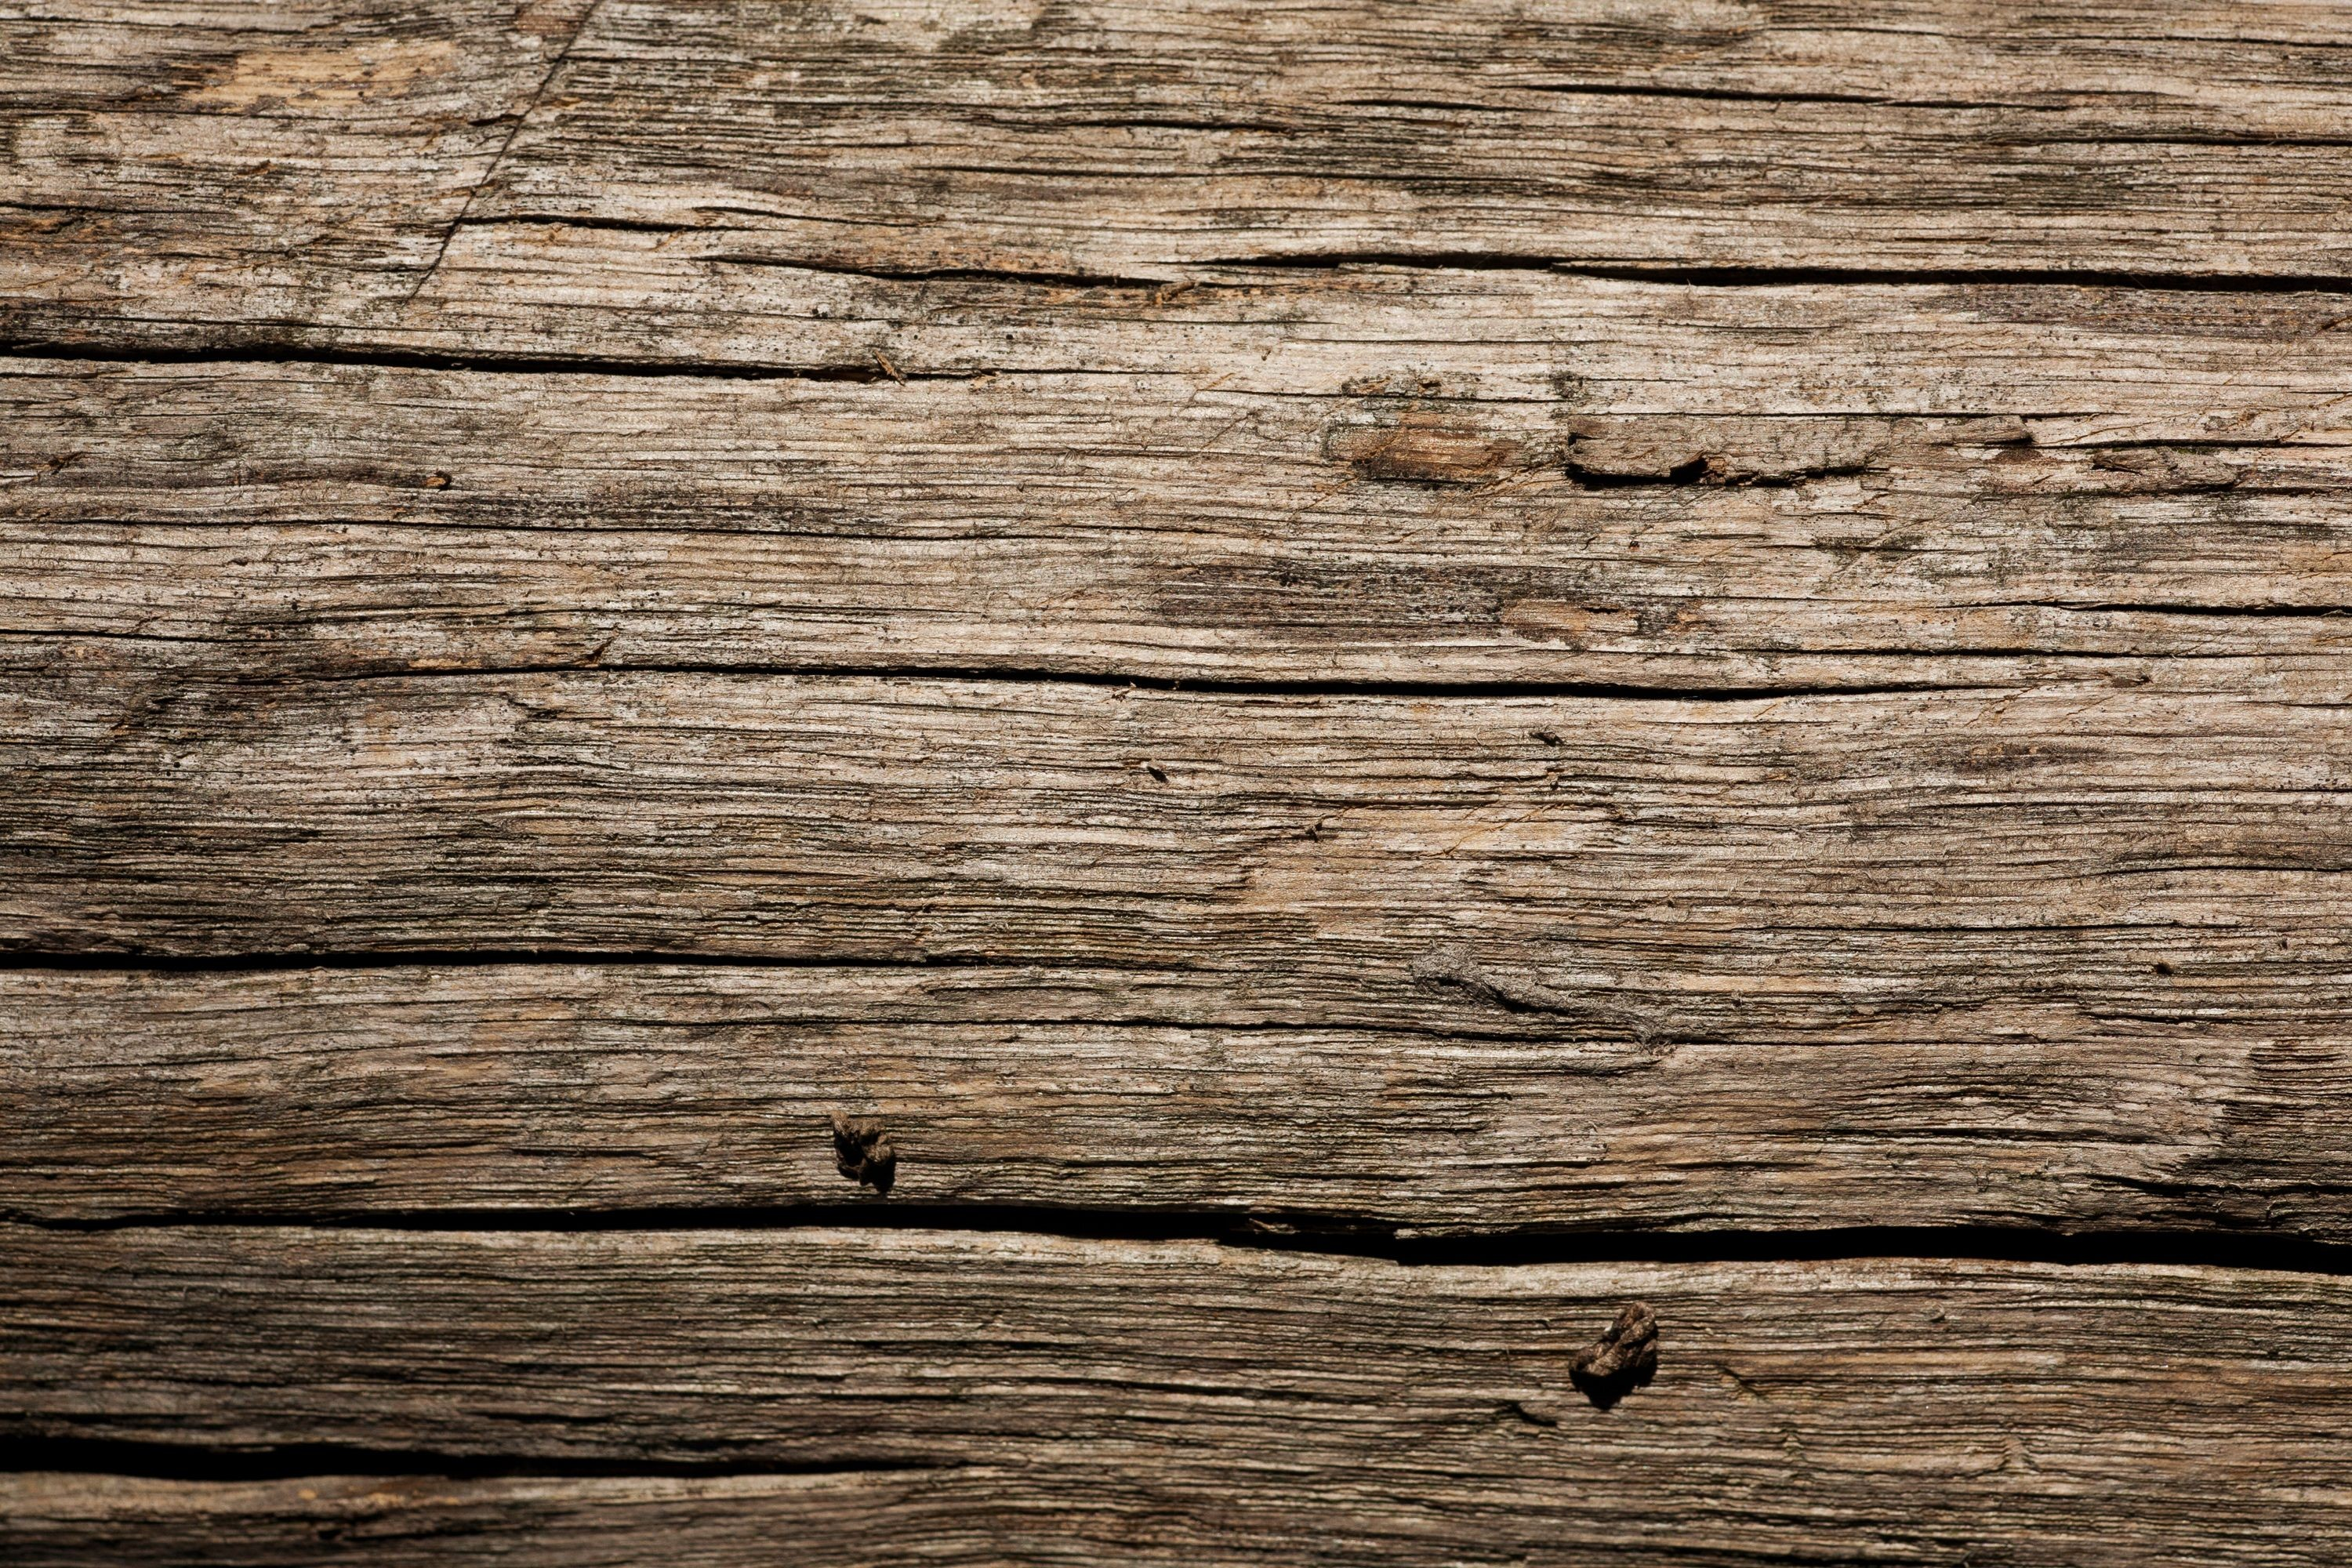 Rustic Wood Background ~ Rustic barn wood background ·① download free beautiful